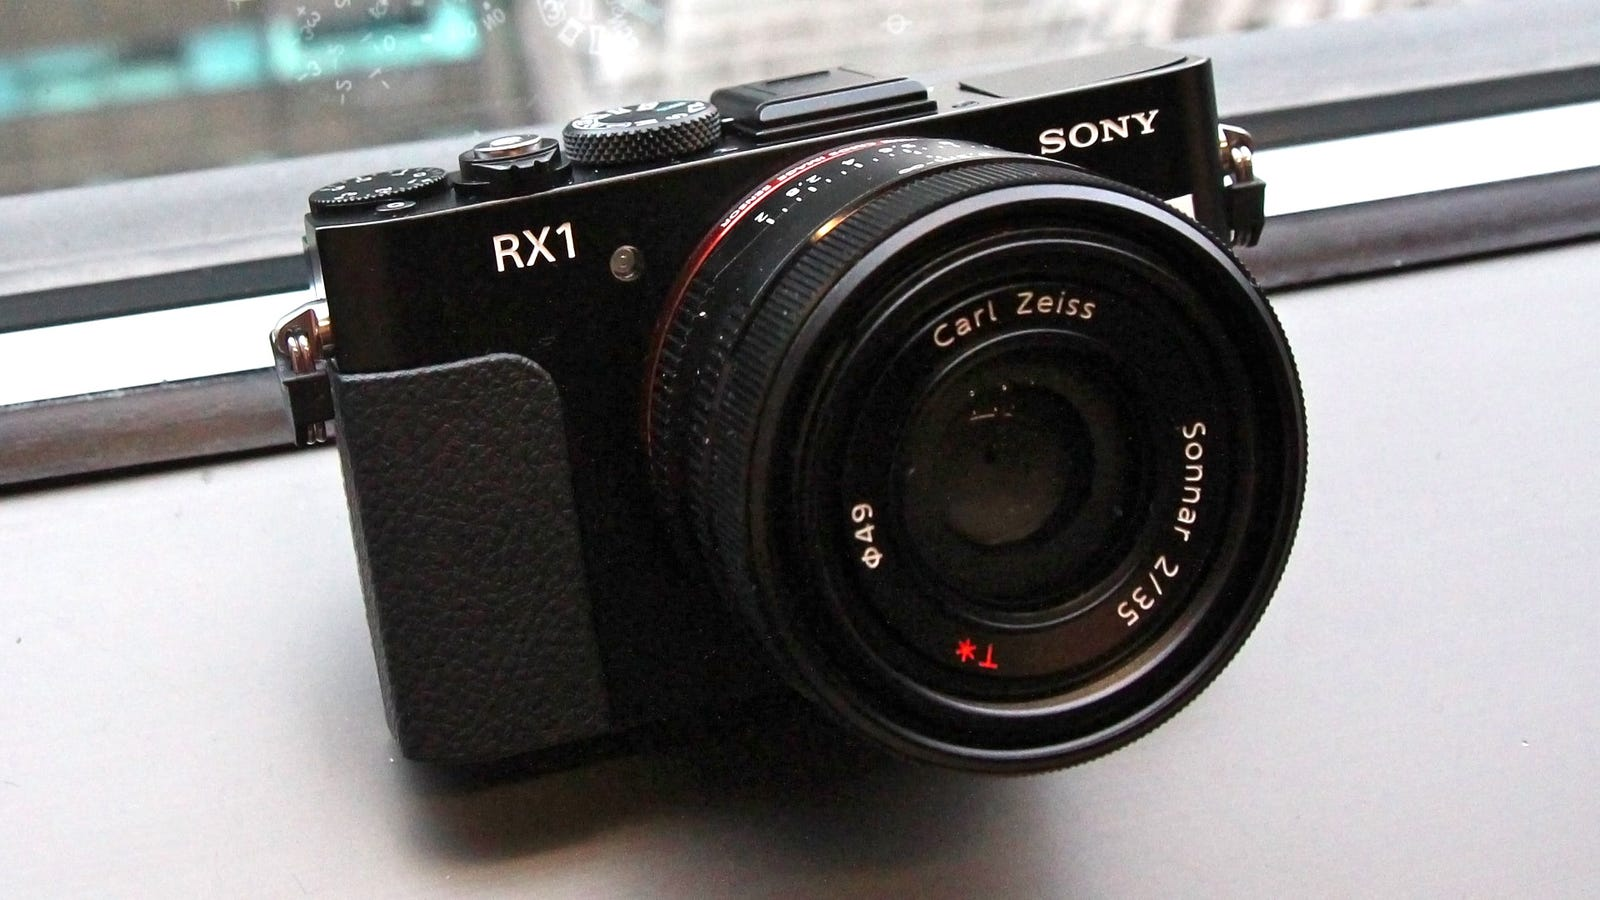 Sony rx1 the first full frame point and shoot camera for Camera camera